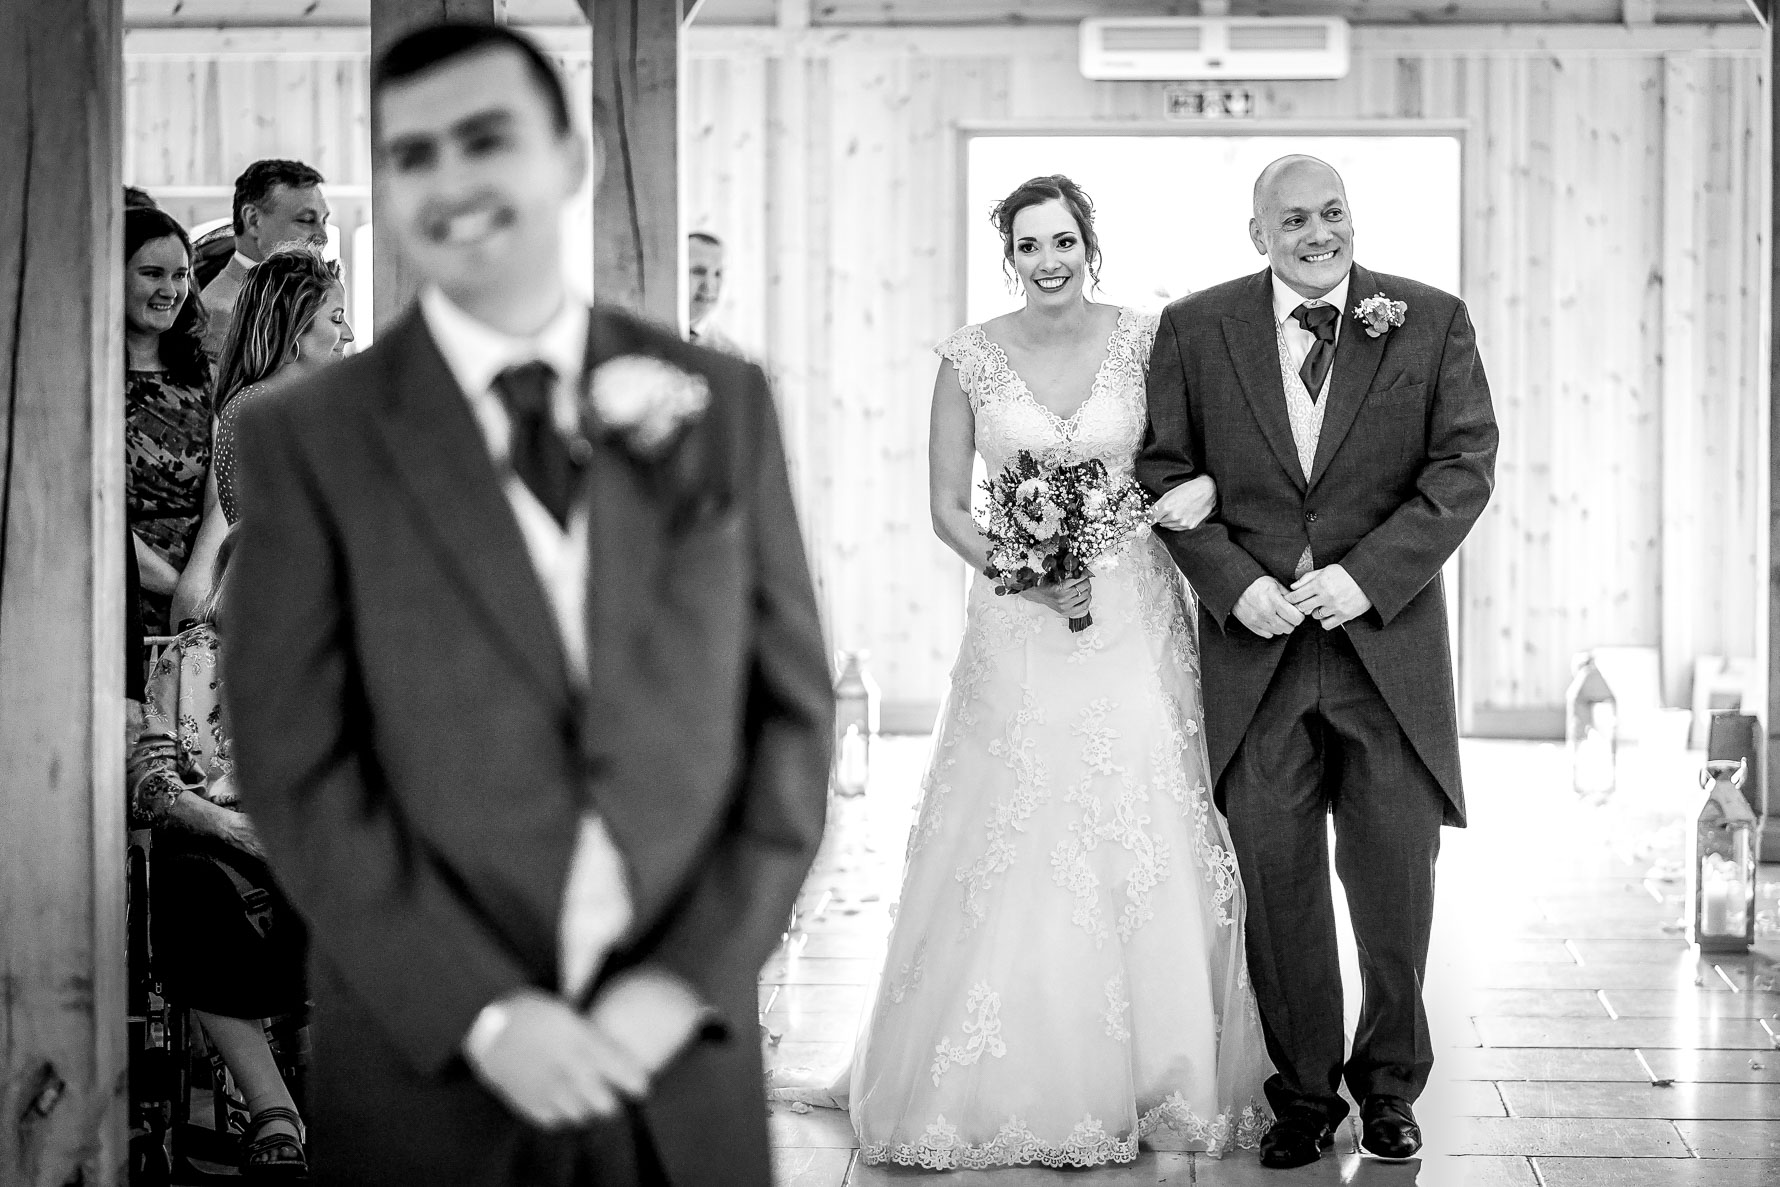 walking down the isle with her dad